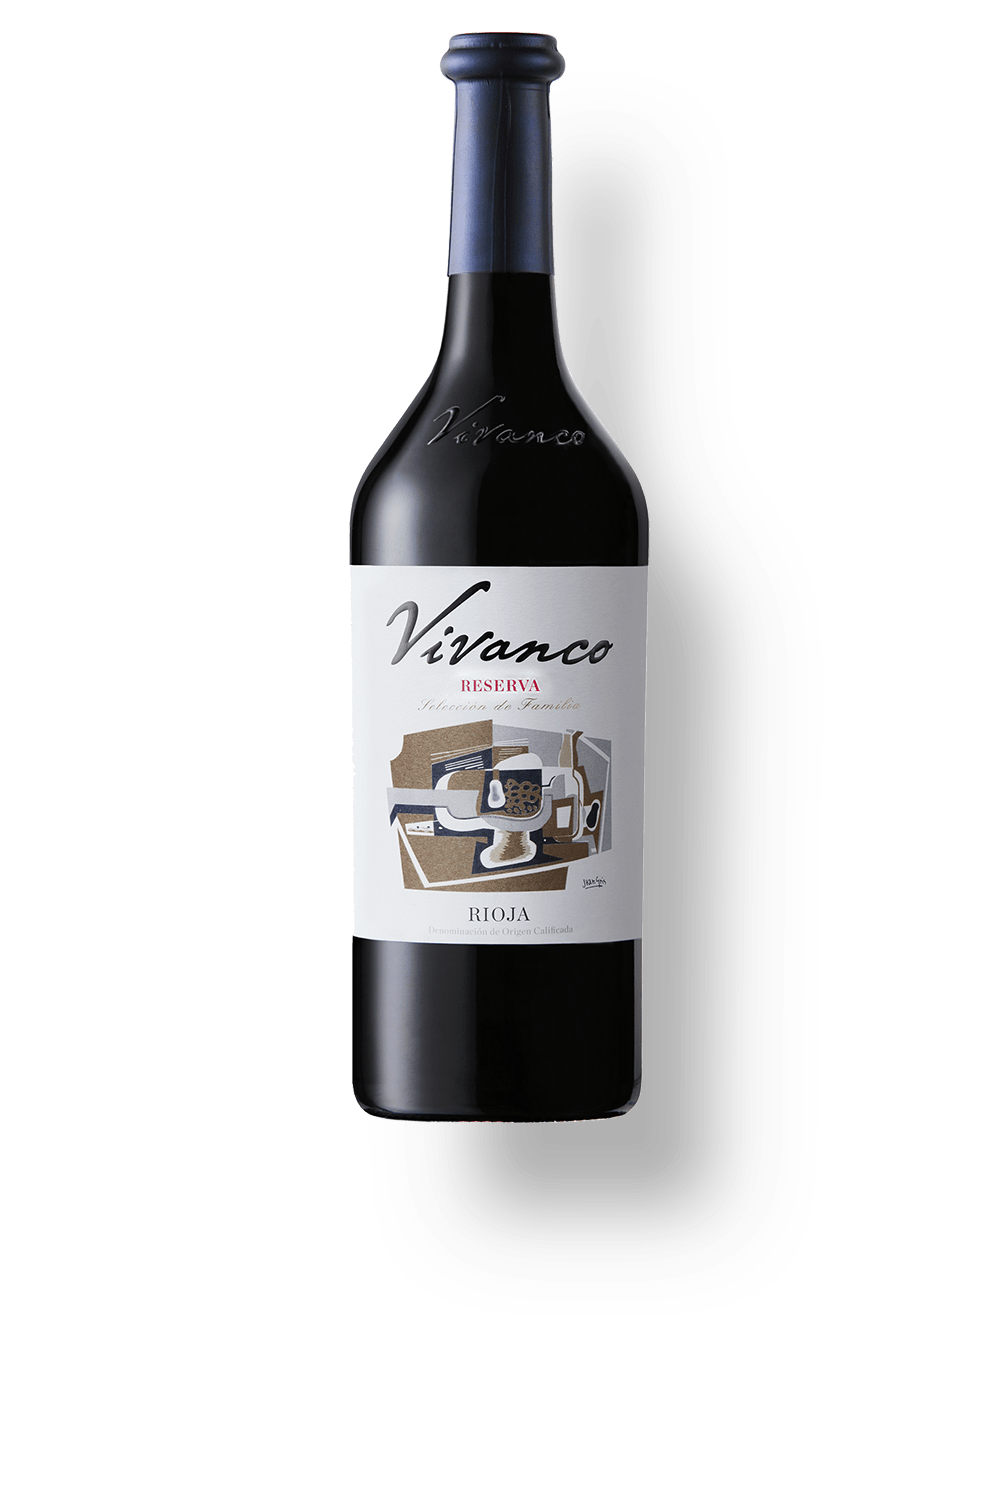 Vivanco-Reserva